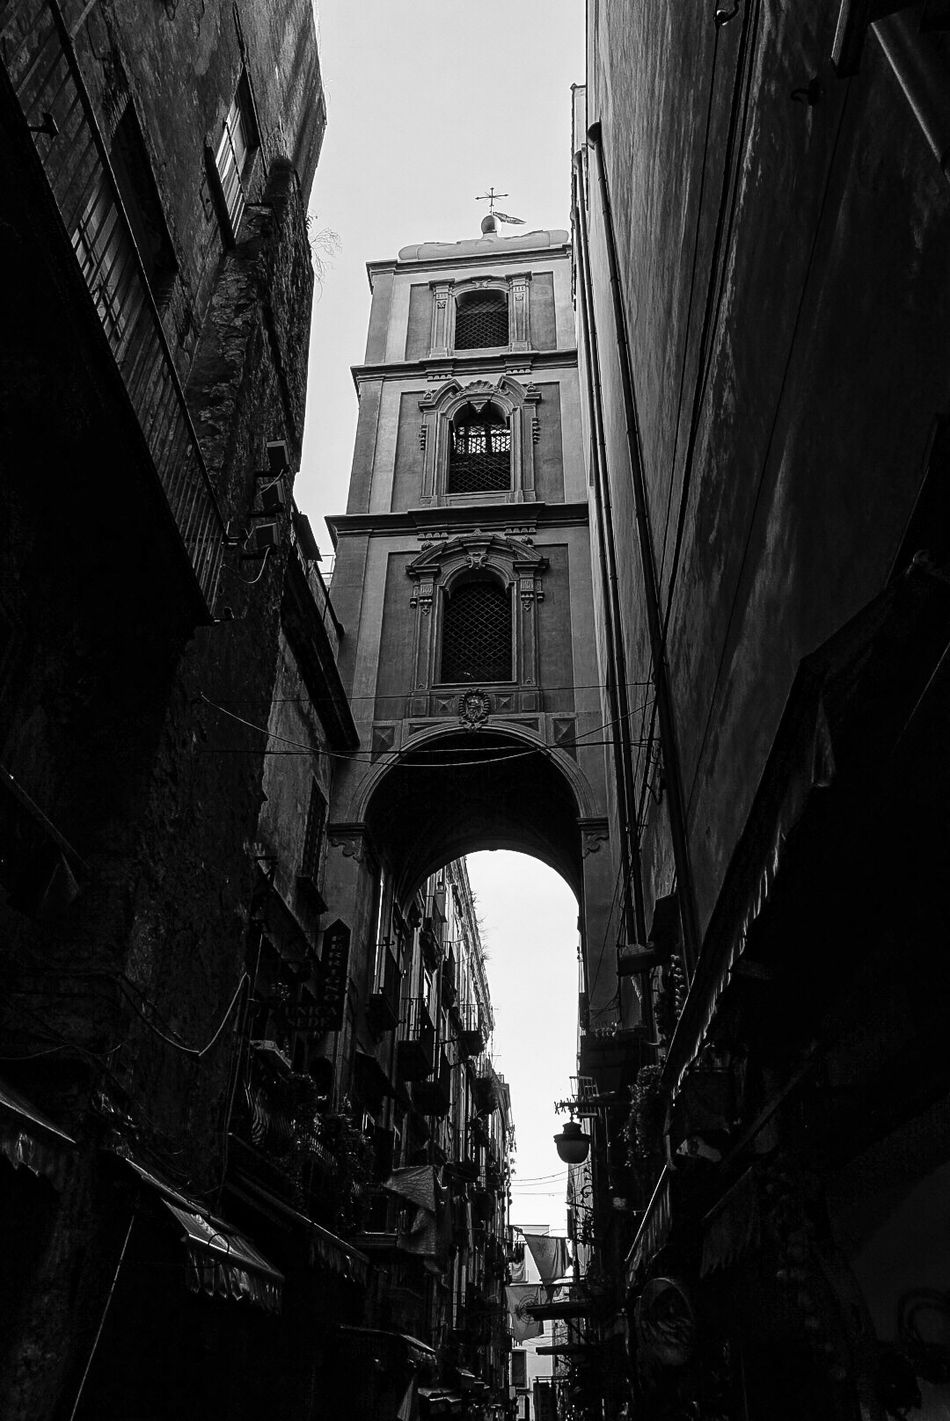 Napoli San Gregorio Armeno Architecture Built Structure Building Exterior Low Angle View Sky Outdoors Day City No People Napoli Naples Napoliphotoproject Napoli ❤ Monochrome Monochrome Photography Streetphotography Holiday Visiting